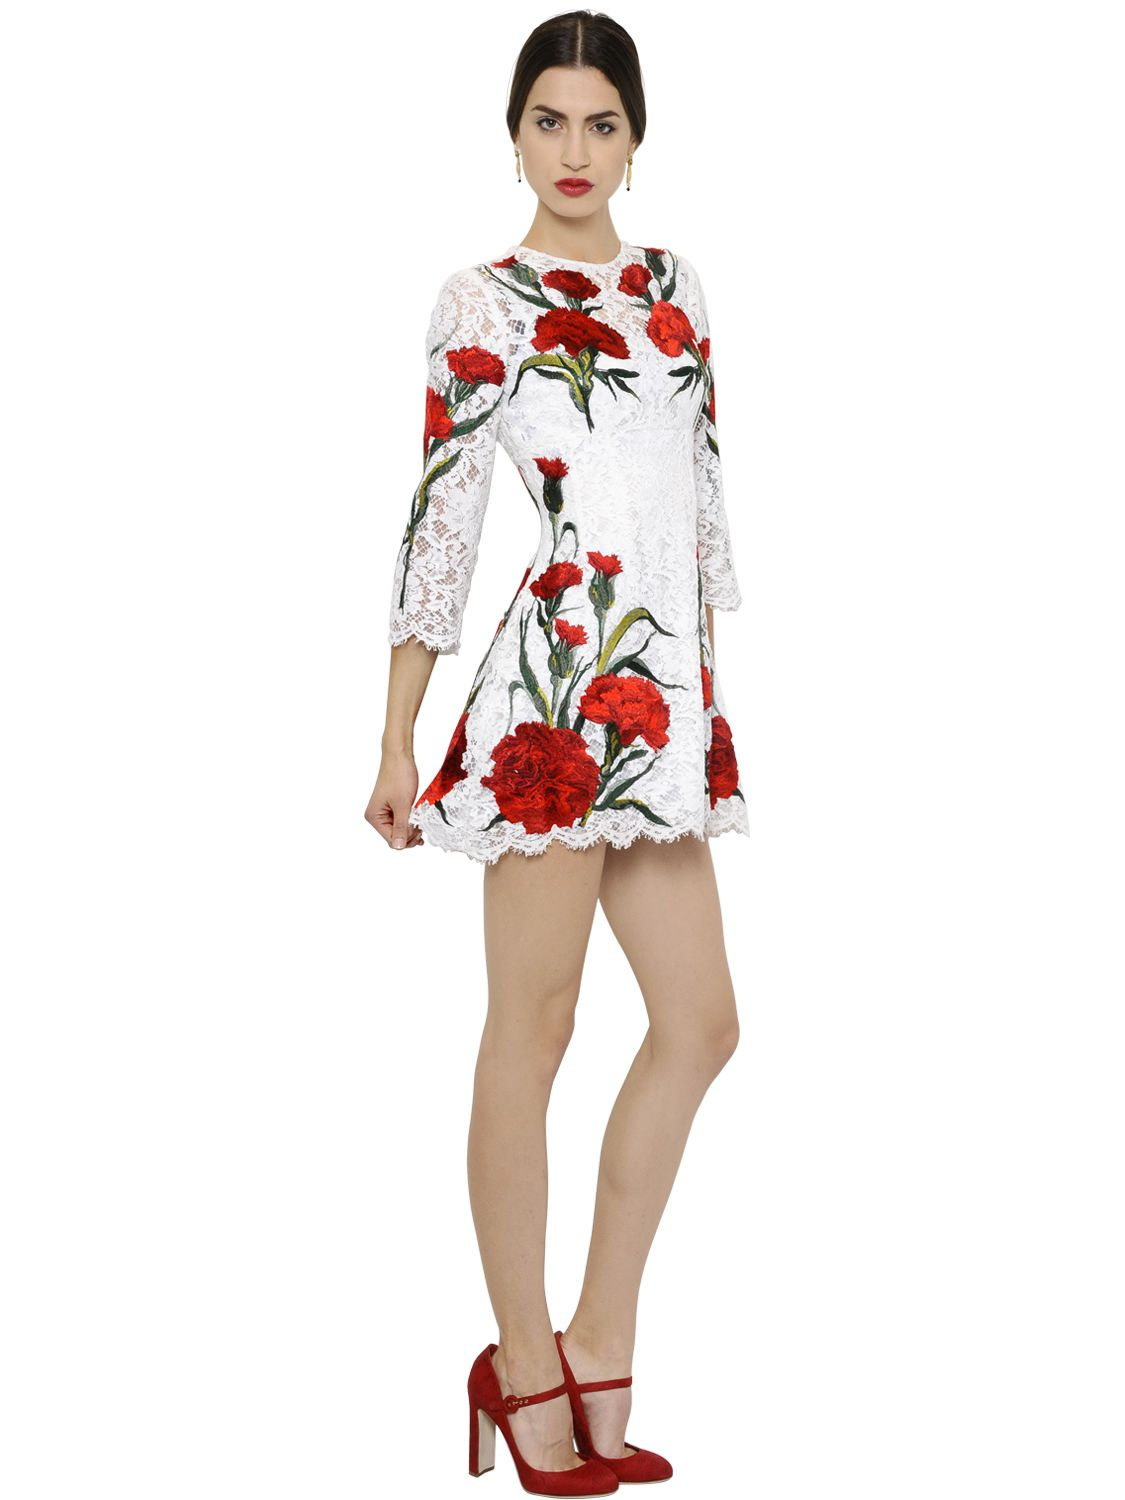 Dolce & Gabbana Woman Embroiderd Cotton And Silk-blend Dress White Size 40 Dolce & Gabbana 24N2y